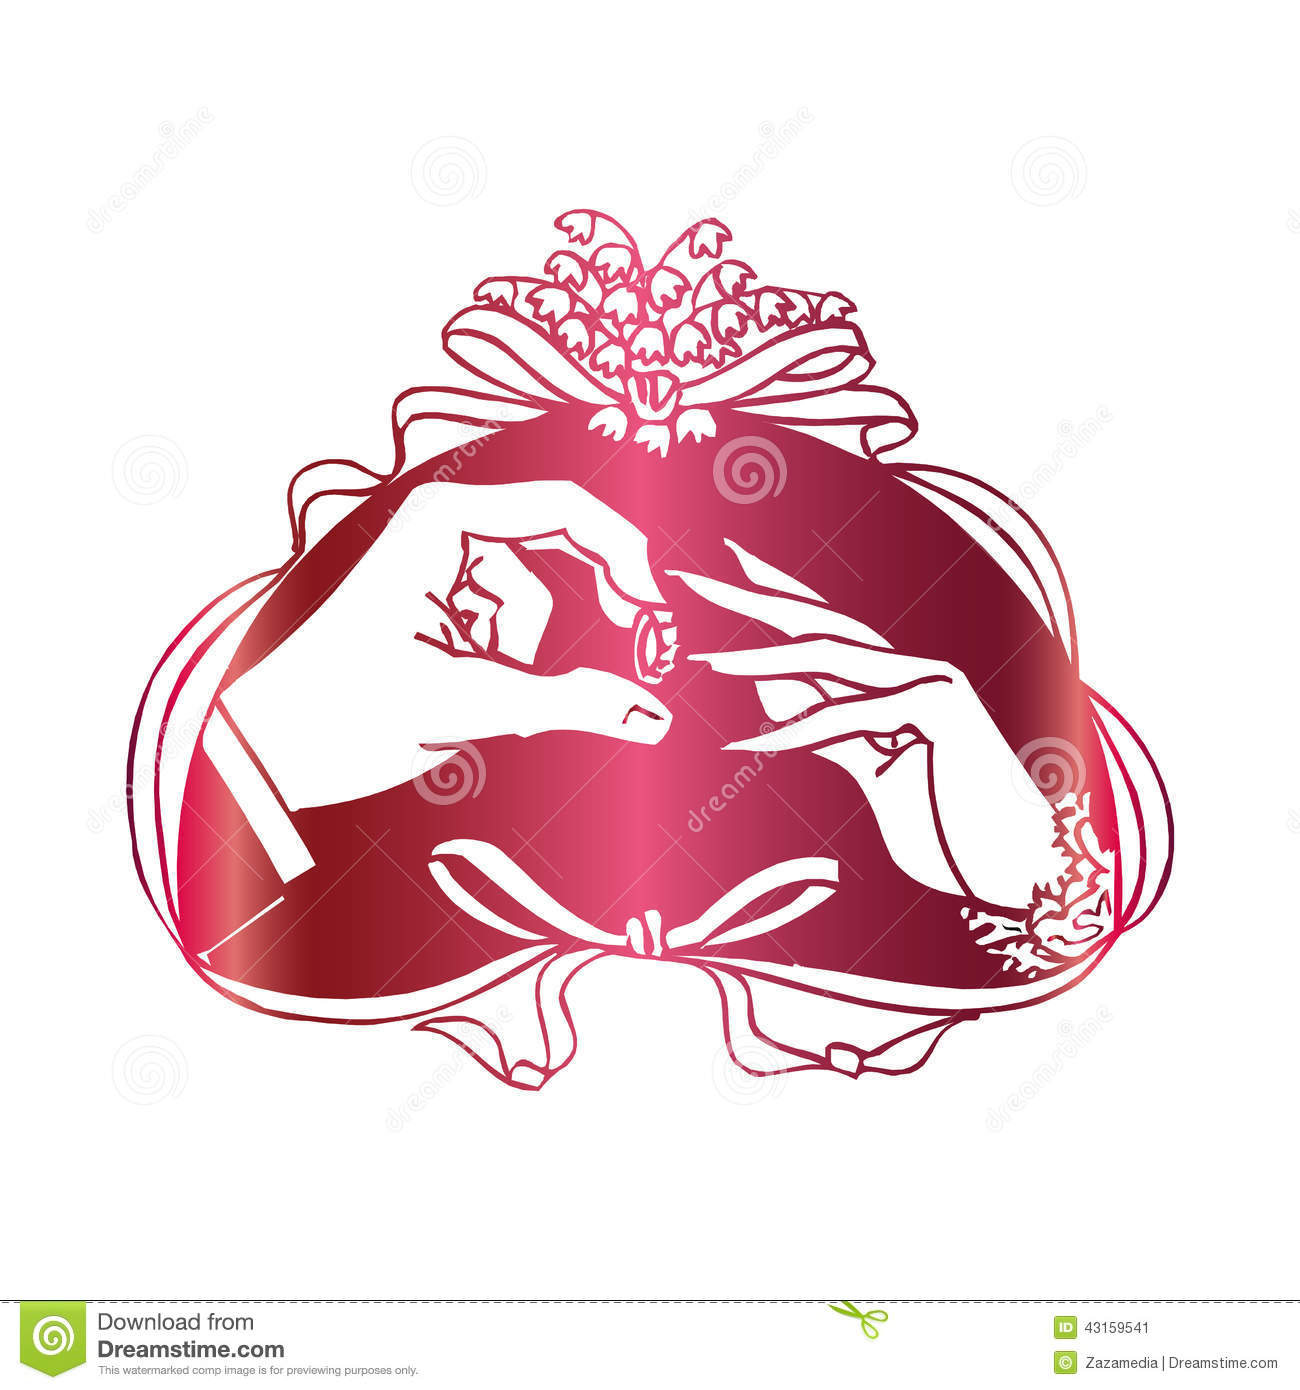 Two Hands Marriage Proposal With Ring Stock Vector   Image  43159541